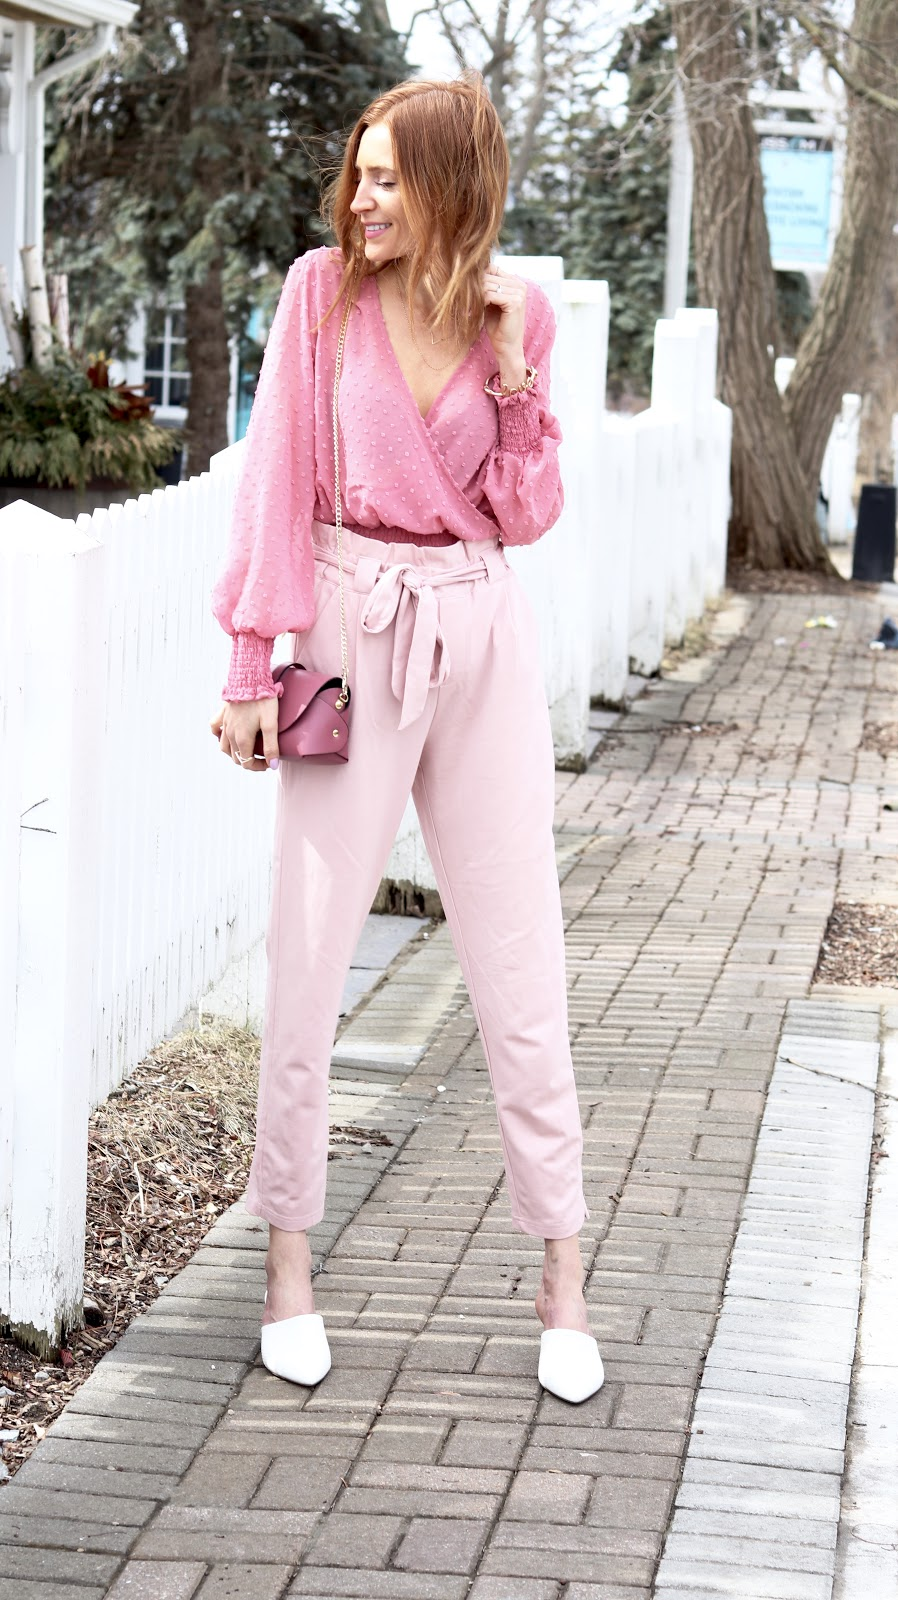 Spring 2018, Pastels & Pastries, How to wear Pink on Pink, How to wear Pink on Pink, Pink Power Suit, Dynamite Dotted Lollipop blouse, Shop M pink pant, Hudson Bay white leather mule, Blue Lemon Paris bag